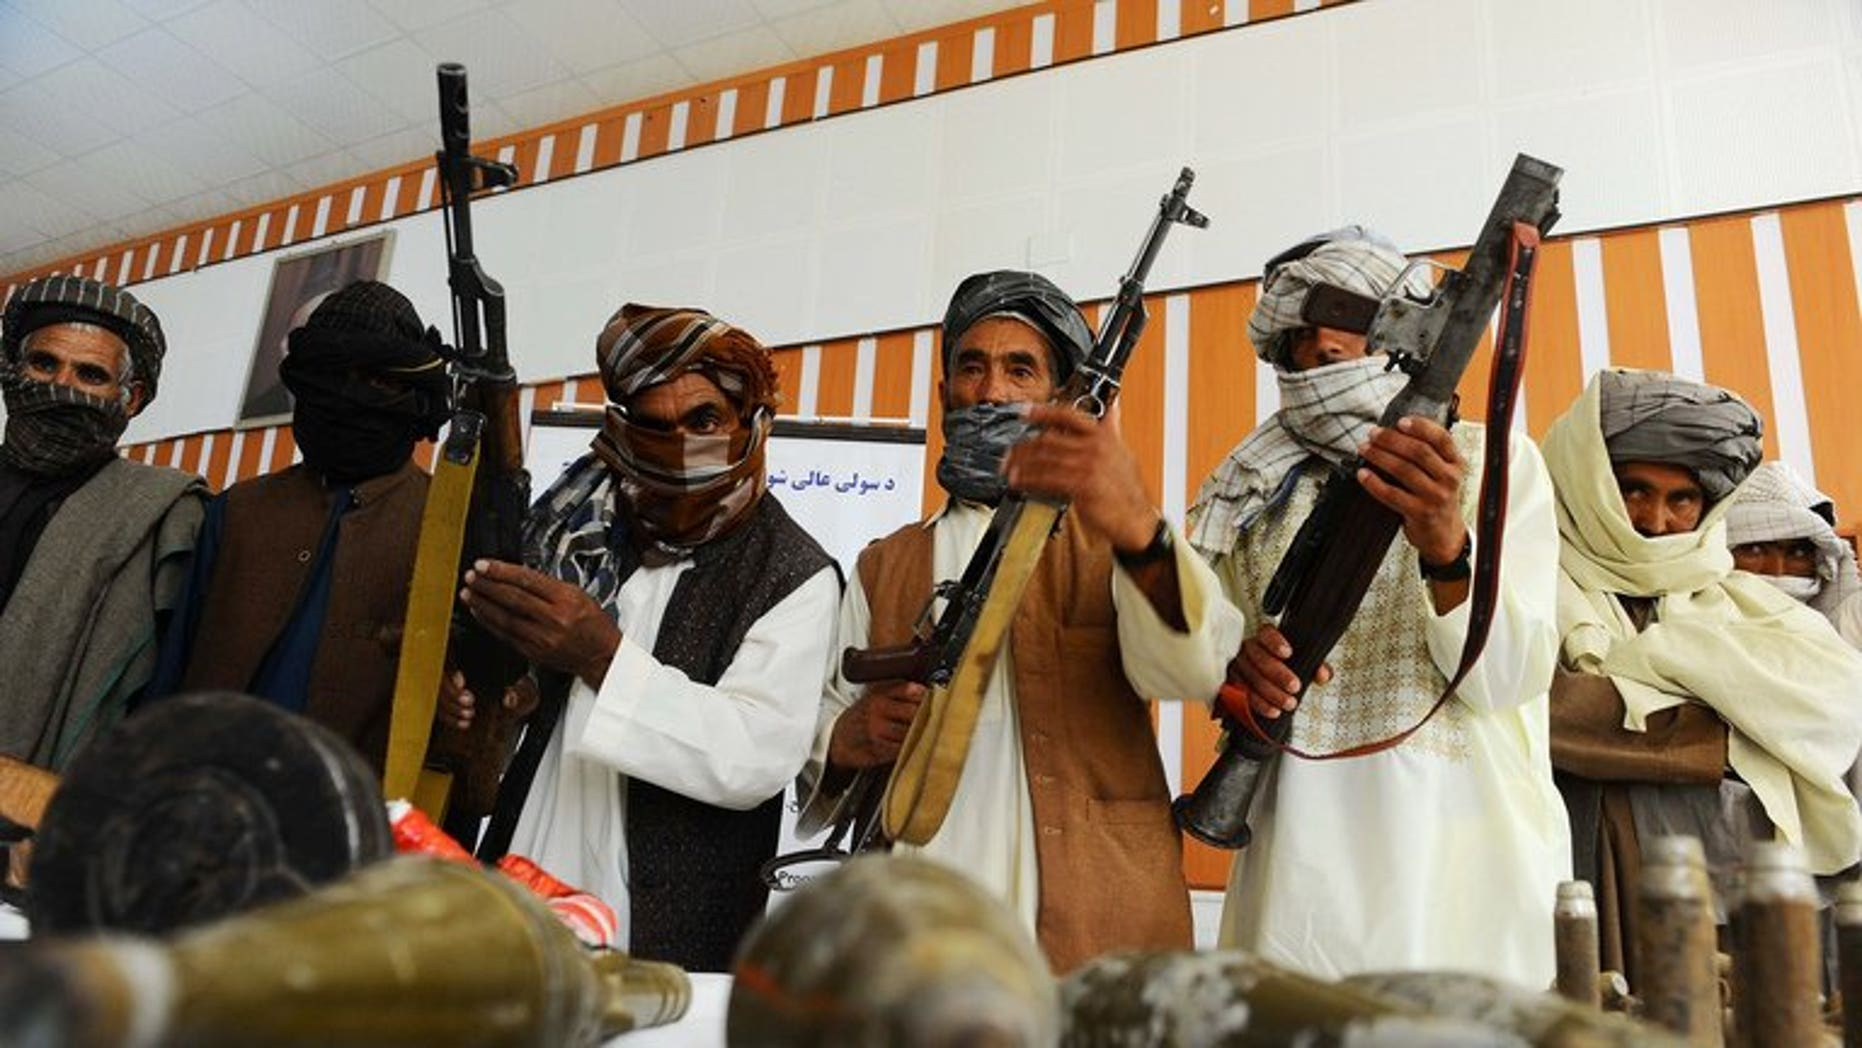 Former Taliban fighters show their weapons to the media, after joining Afghan government forces, in Herat, on June 26, 2013. The US said on Thursday that it expected the Taliban to continue to mount attacks in Afghanistan even as the rebels hold peace talks from their new office in Qatar.